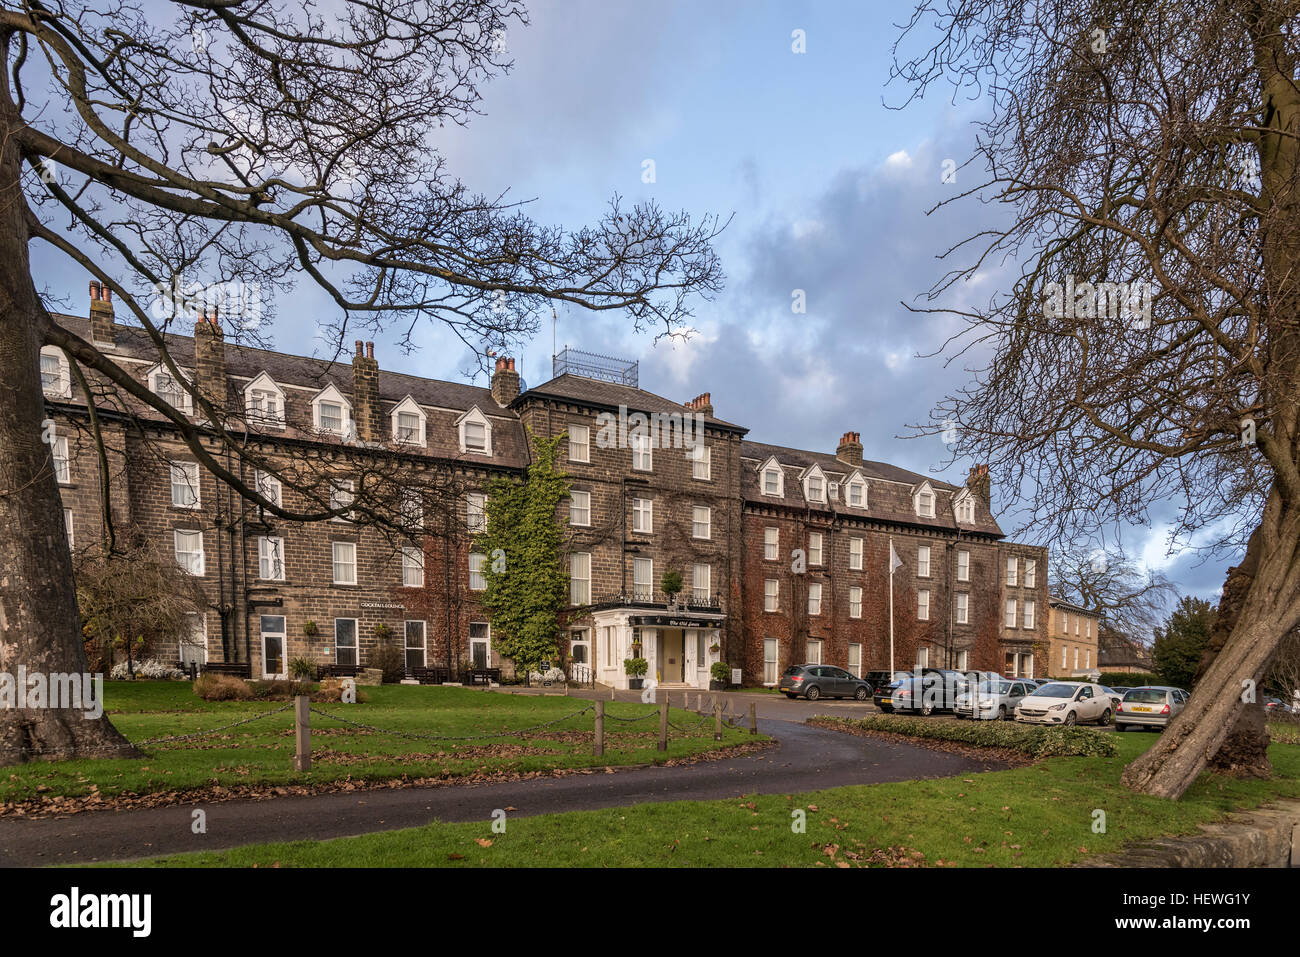 The Old Swan hotel in Harrogate North Yorkshire. The hotel that famous crime writer Agatha Christie disappeared - Stock Image